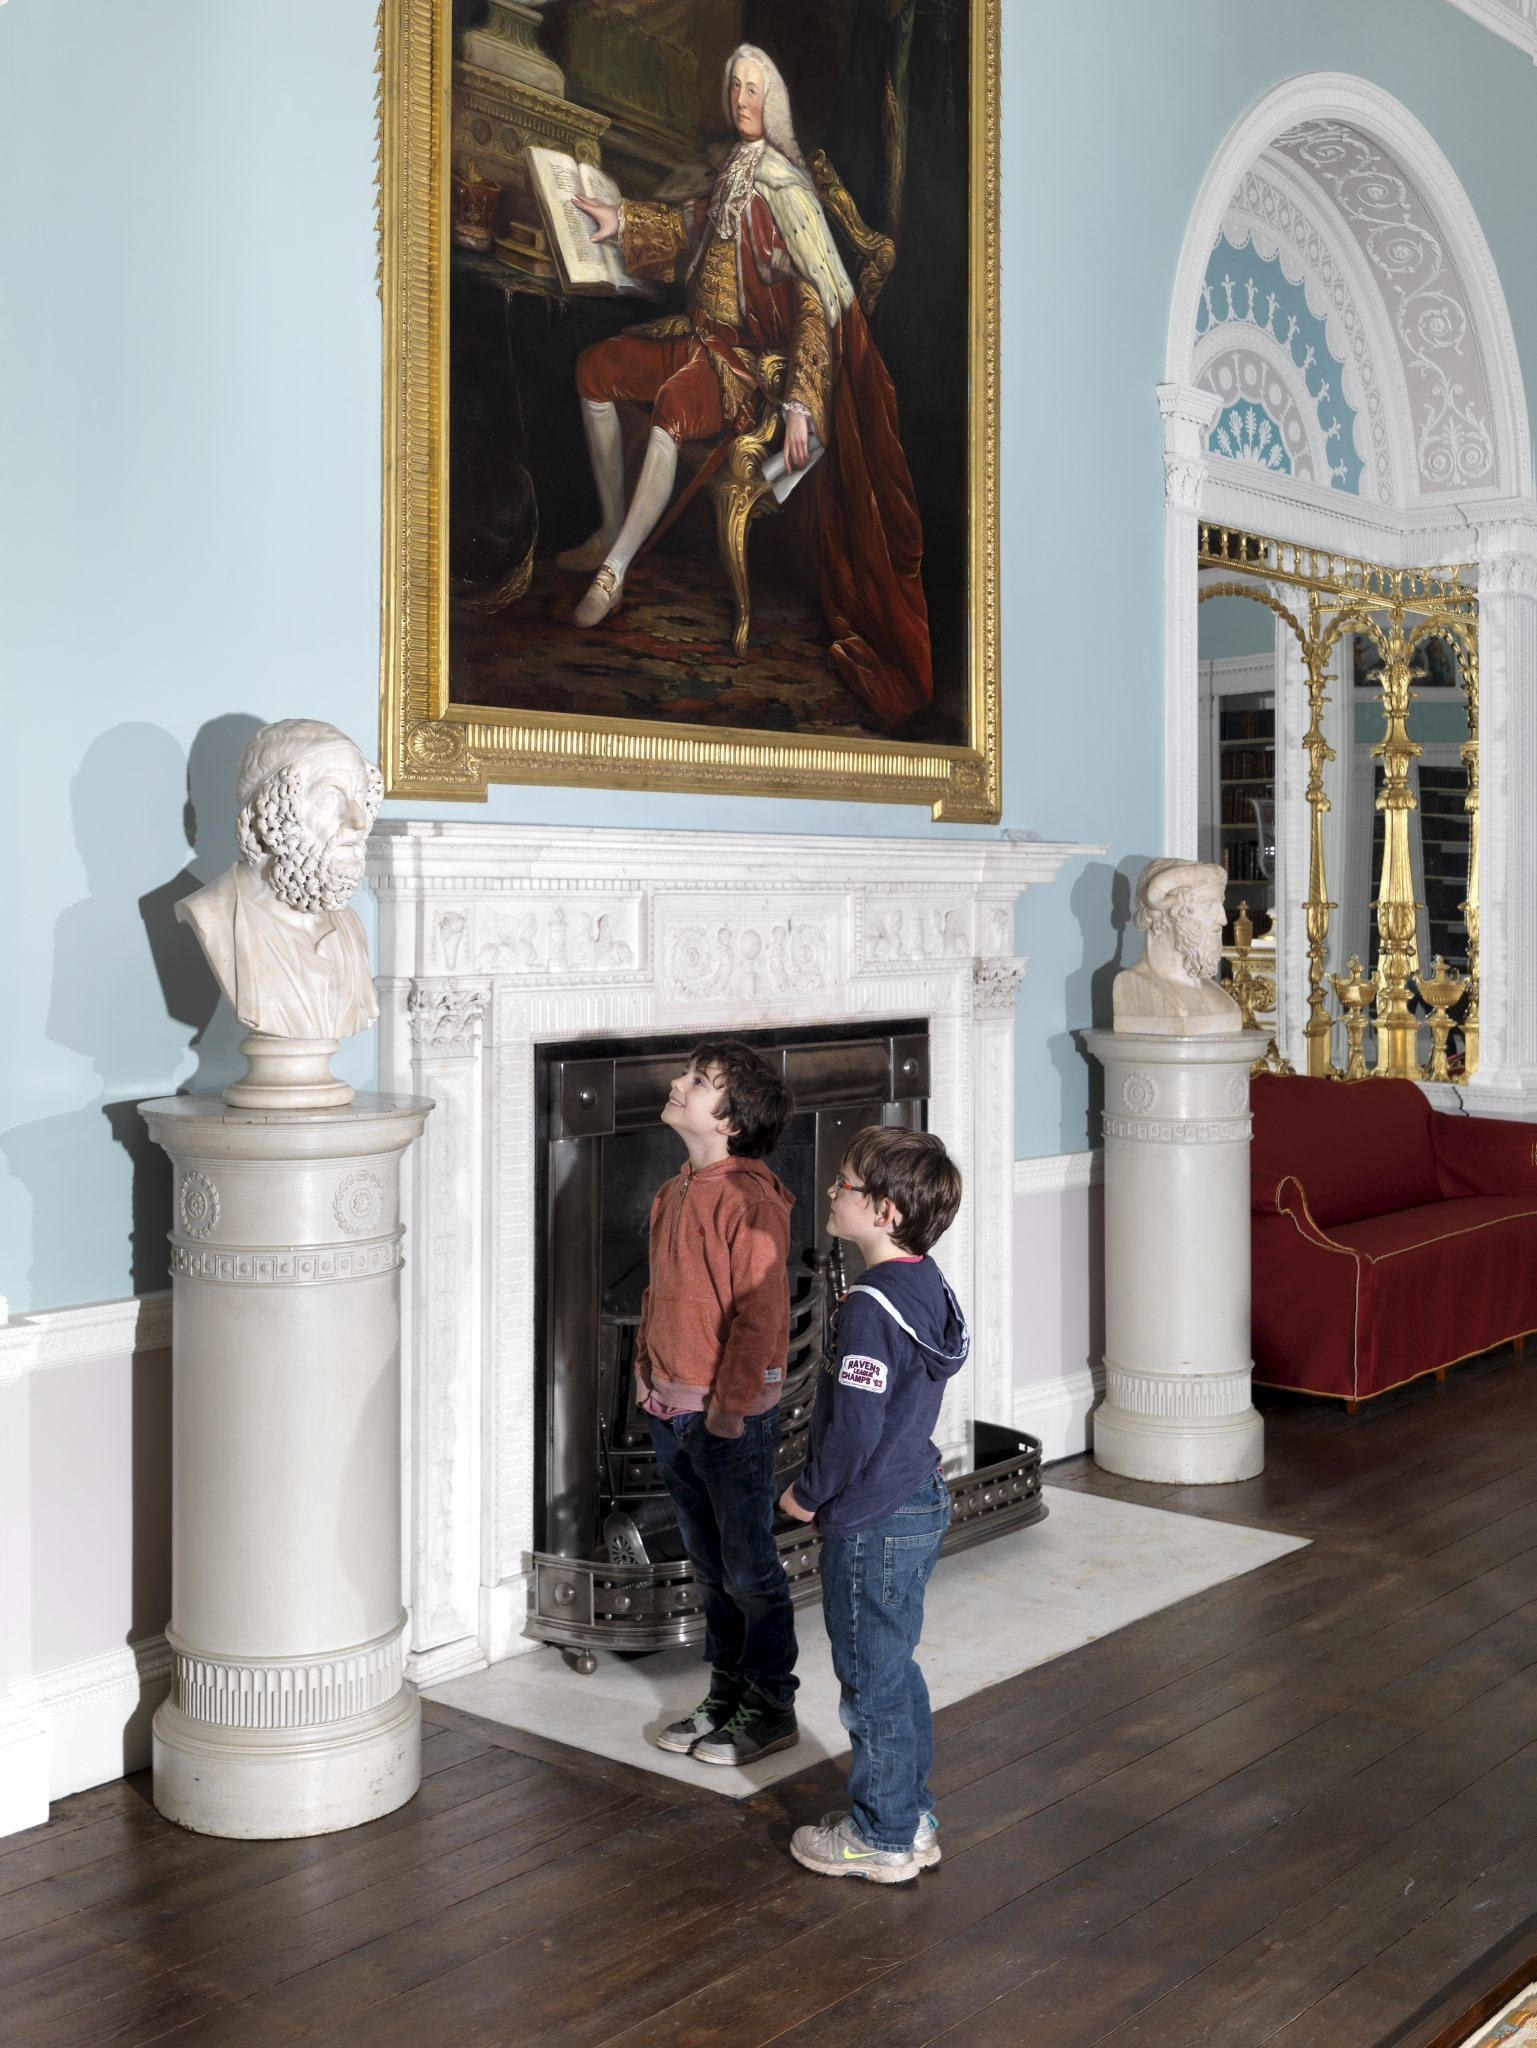 Admire the 'Great Room' at Kenwood House